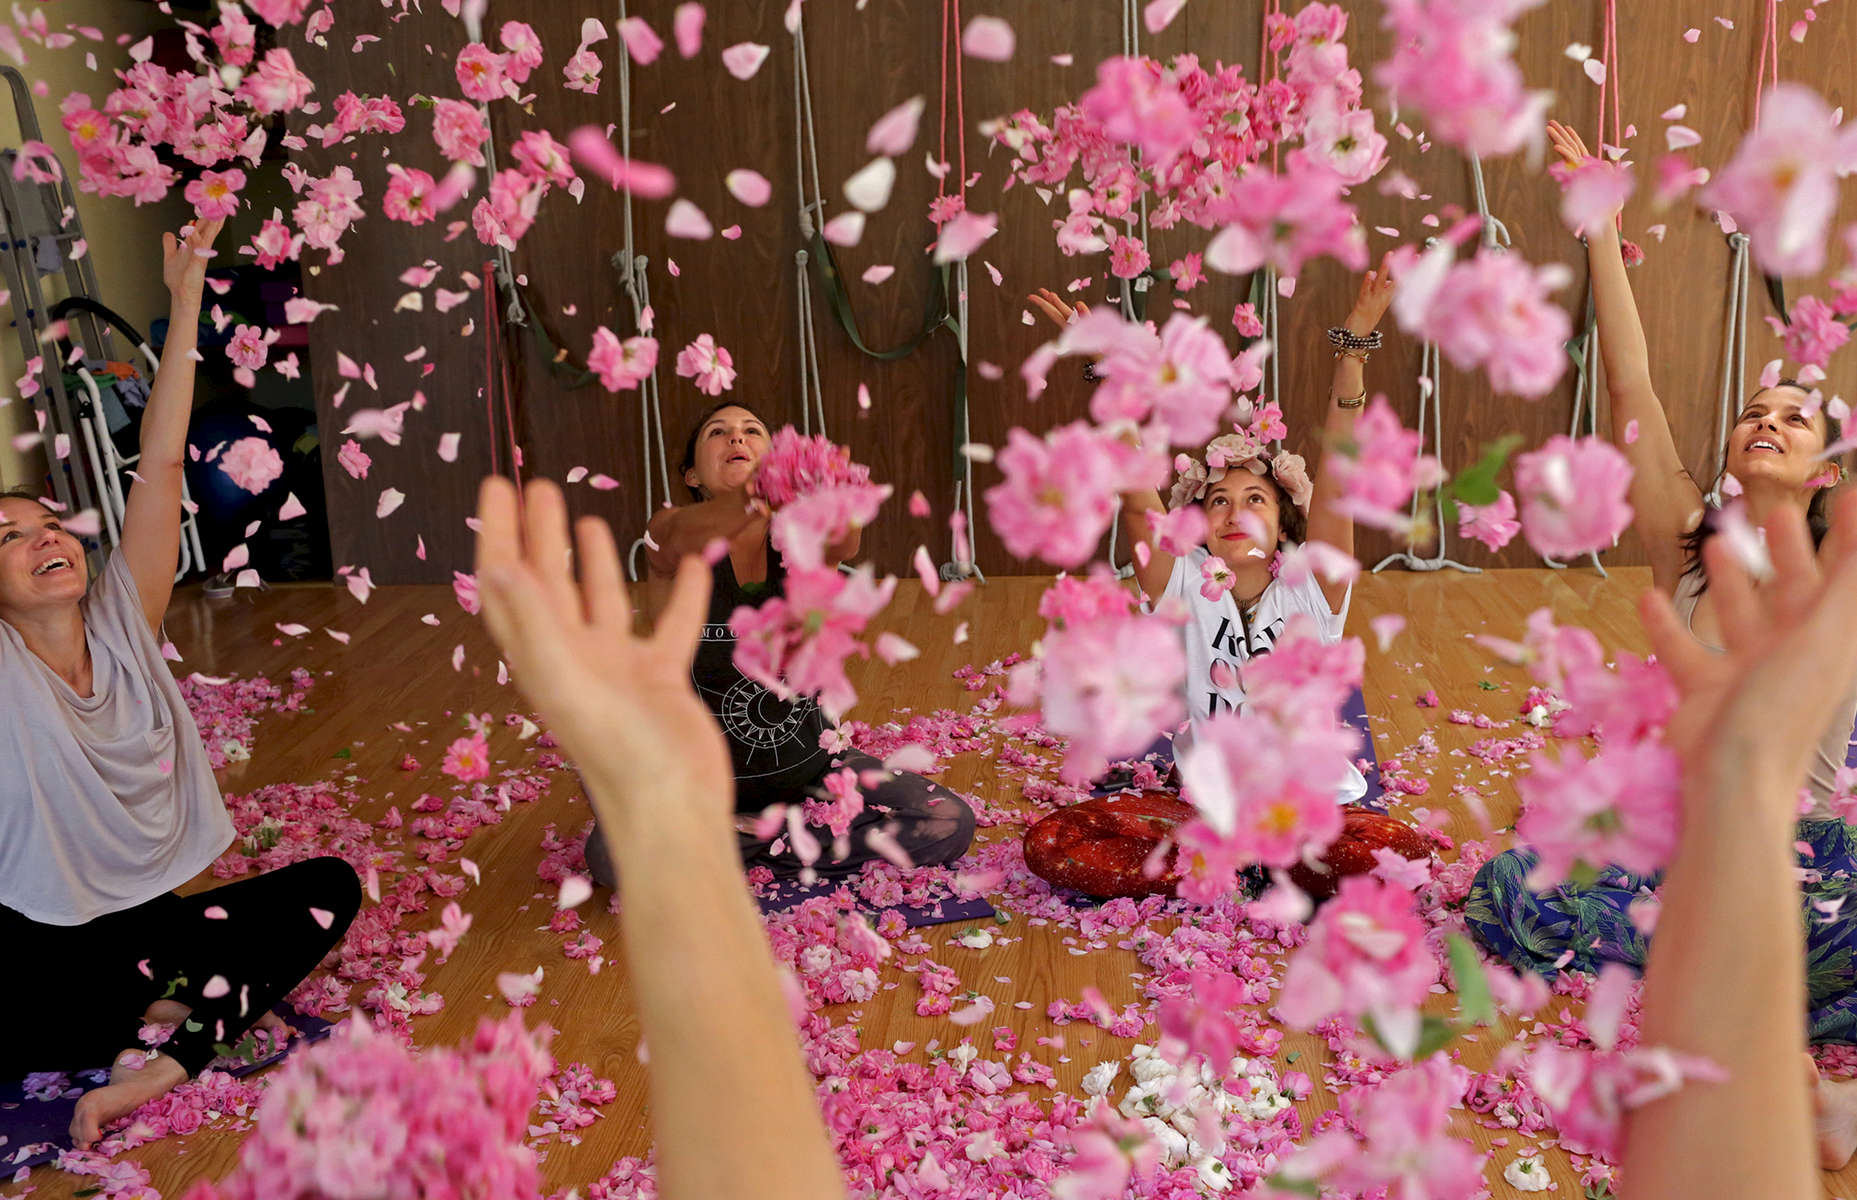 A rose yoga class in the yoga club {quote}Smiling Flower Kazanlak{quote} in Kazanlak on May 22, 2018. Photo by: Yana Paskova for National Geographic Traveler